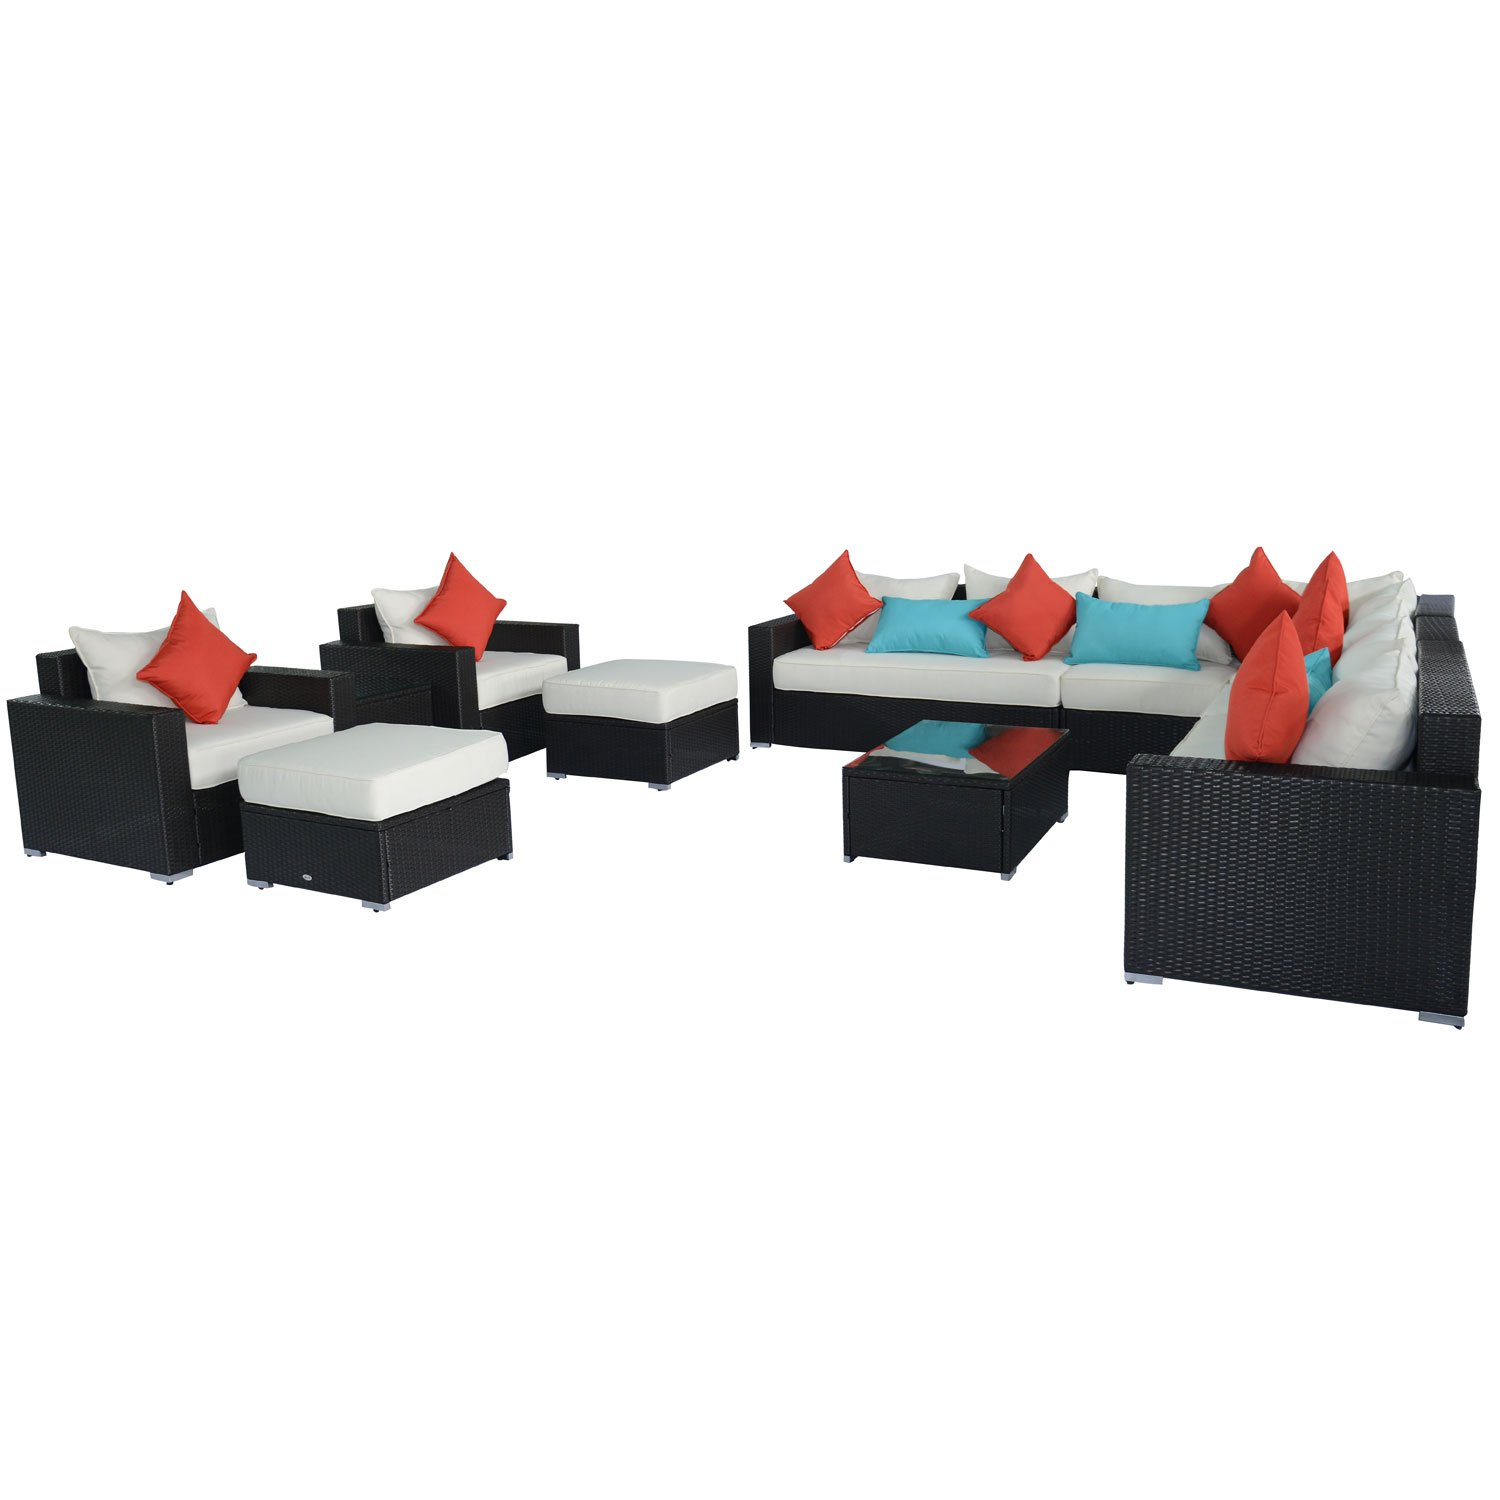 Outsunny 13 Piece Outdoor Rattan Wicker Sectional Sofa Furniture